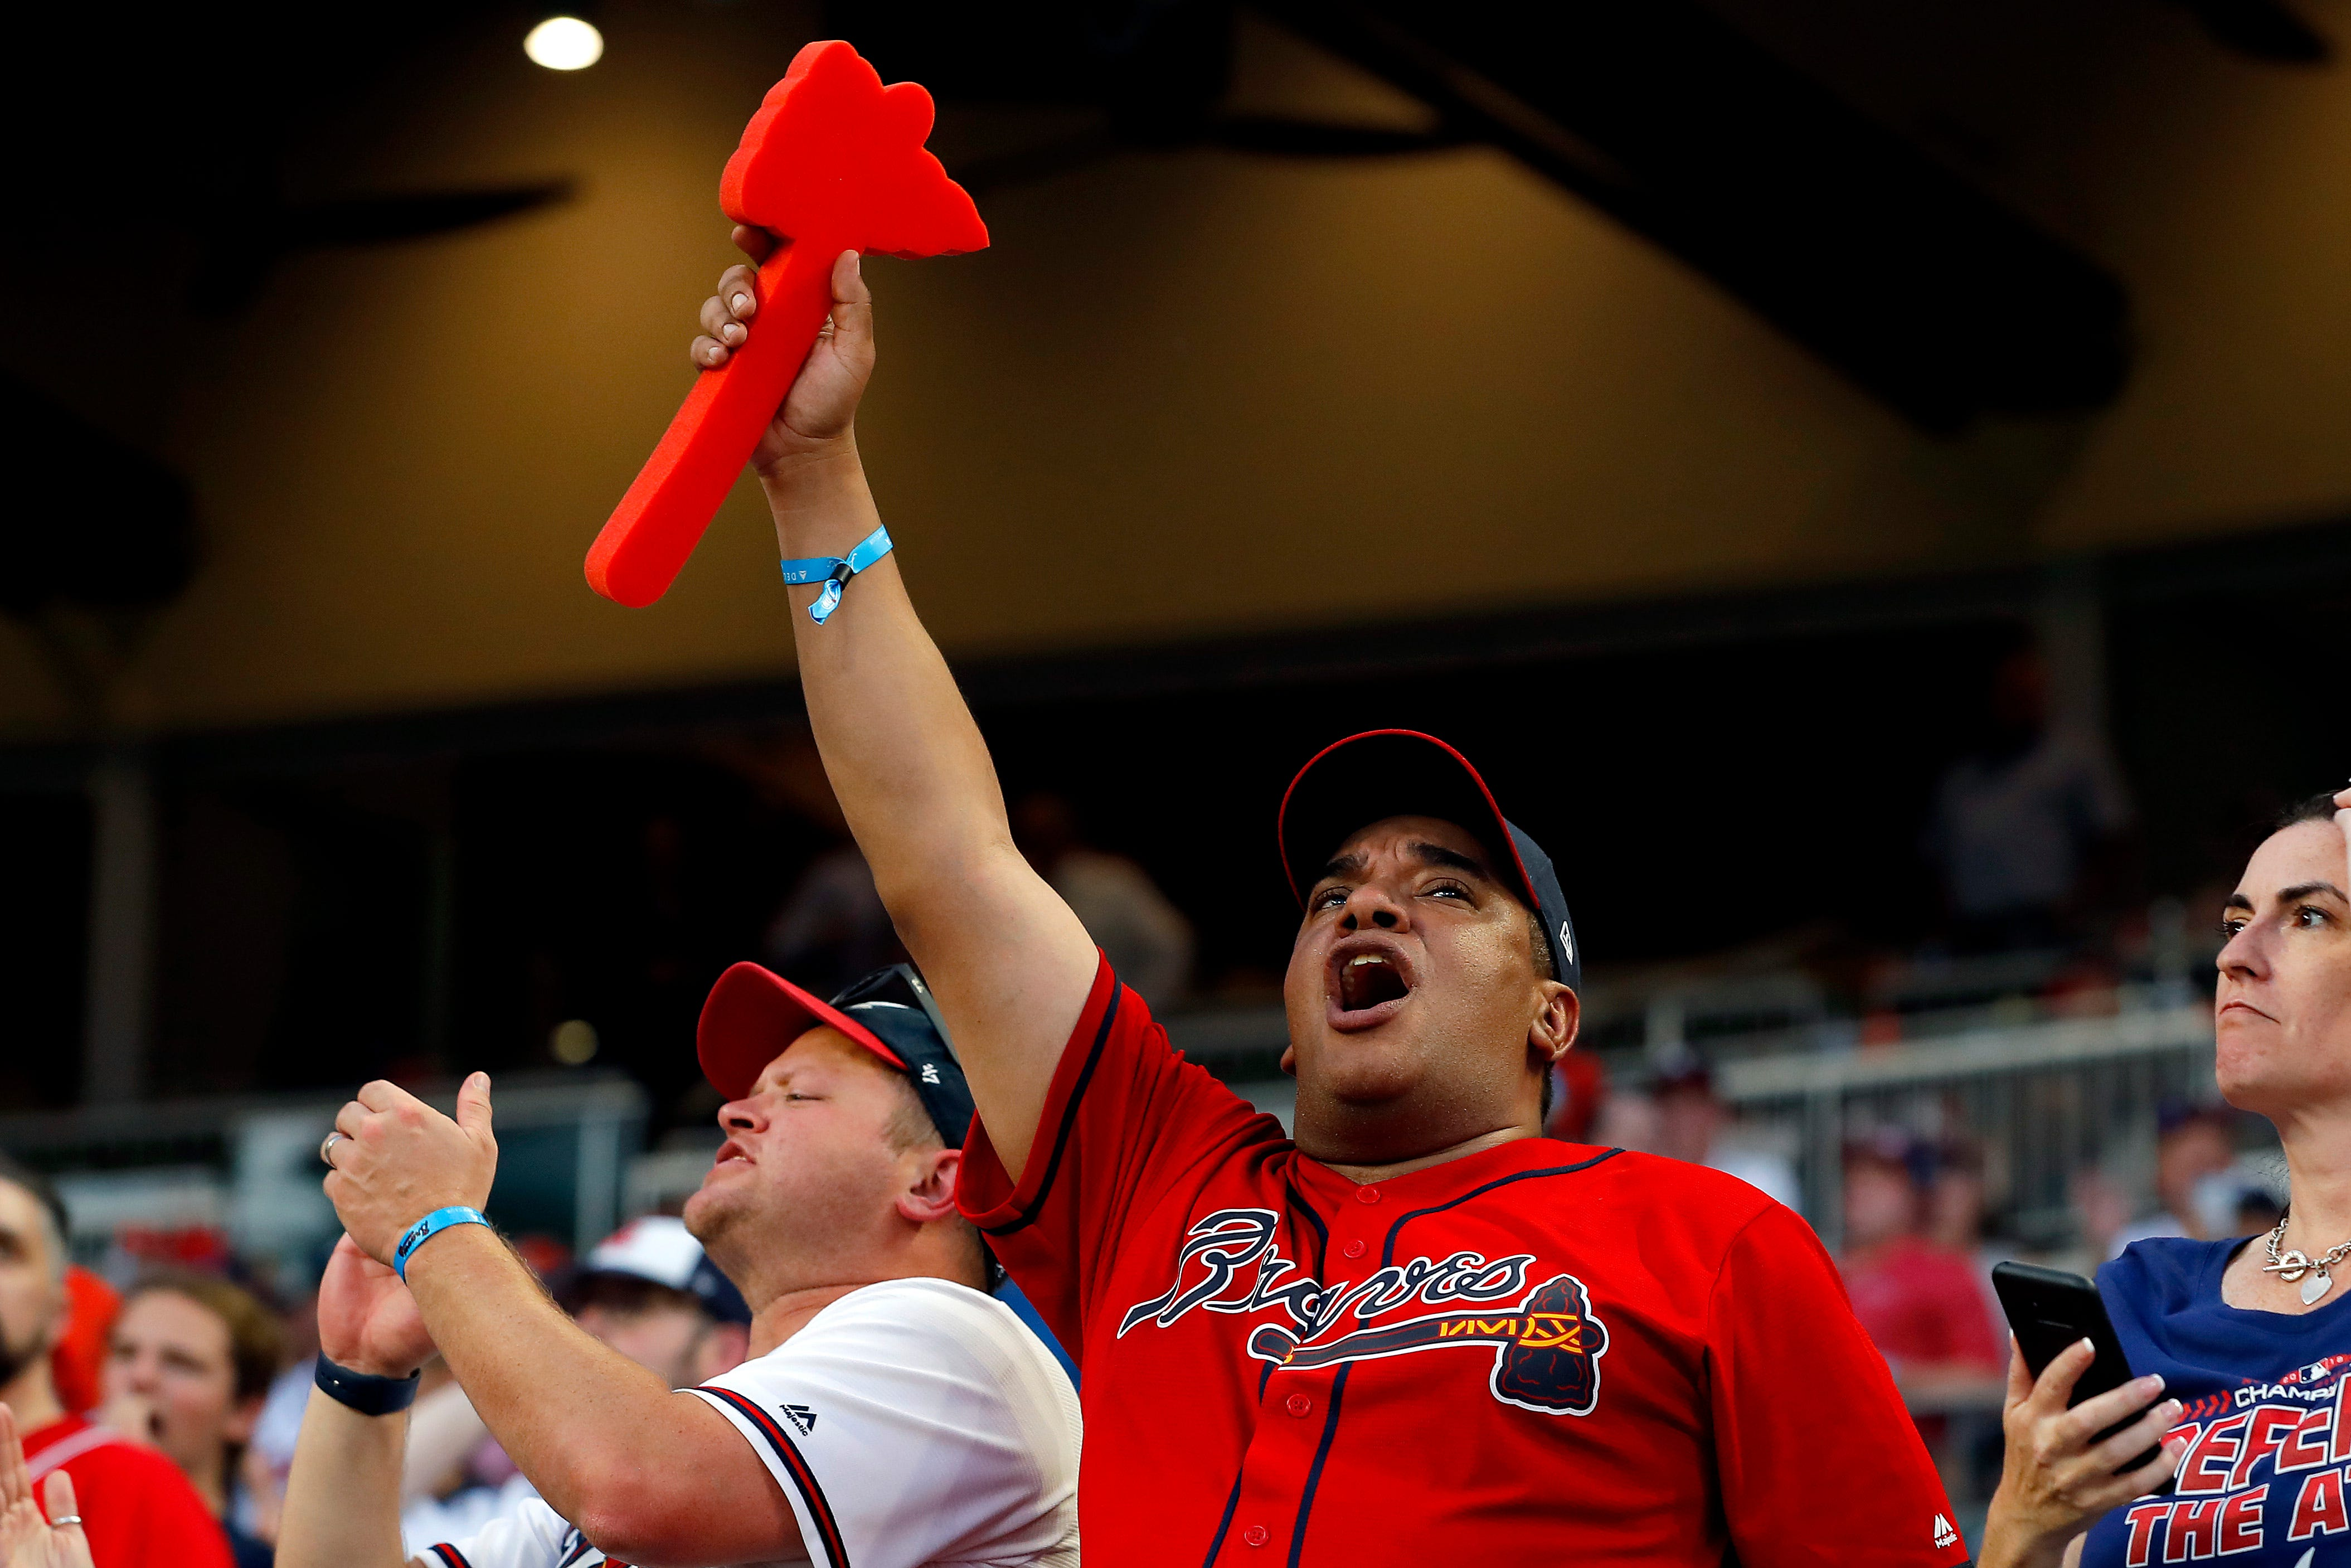 Braves stop handing out tomahawks amidst backlash over  Tomahawk Chop